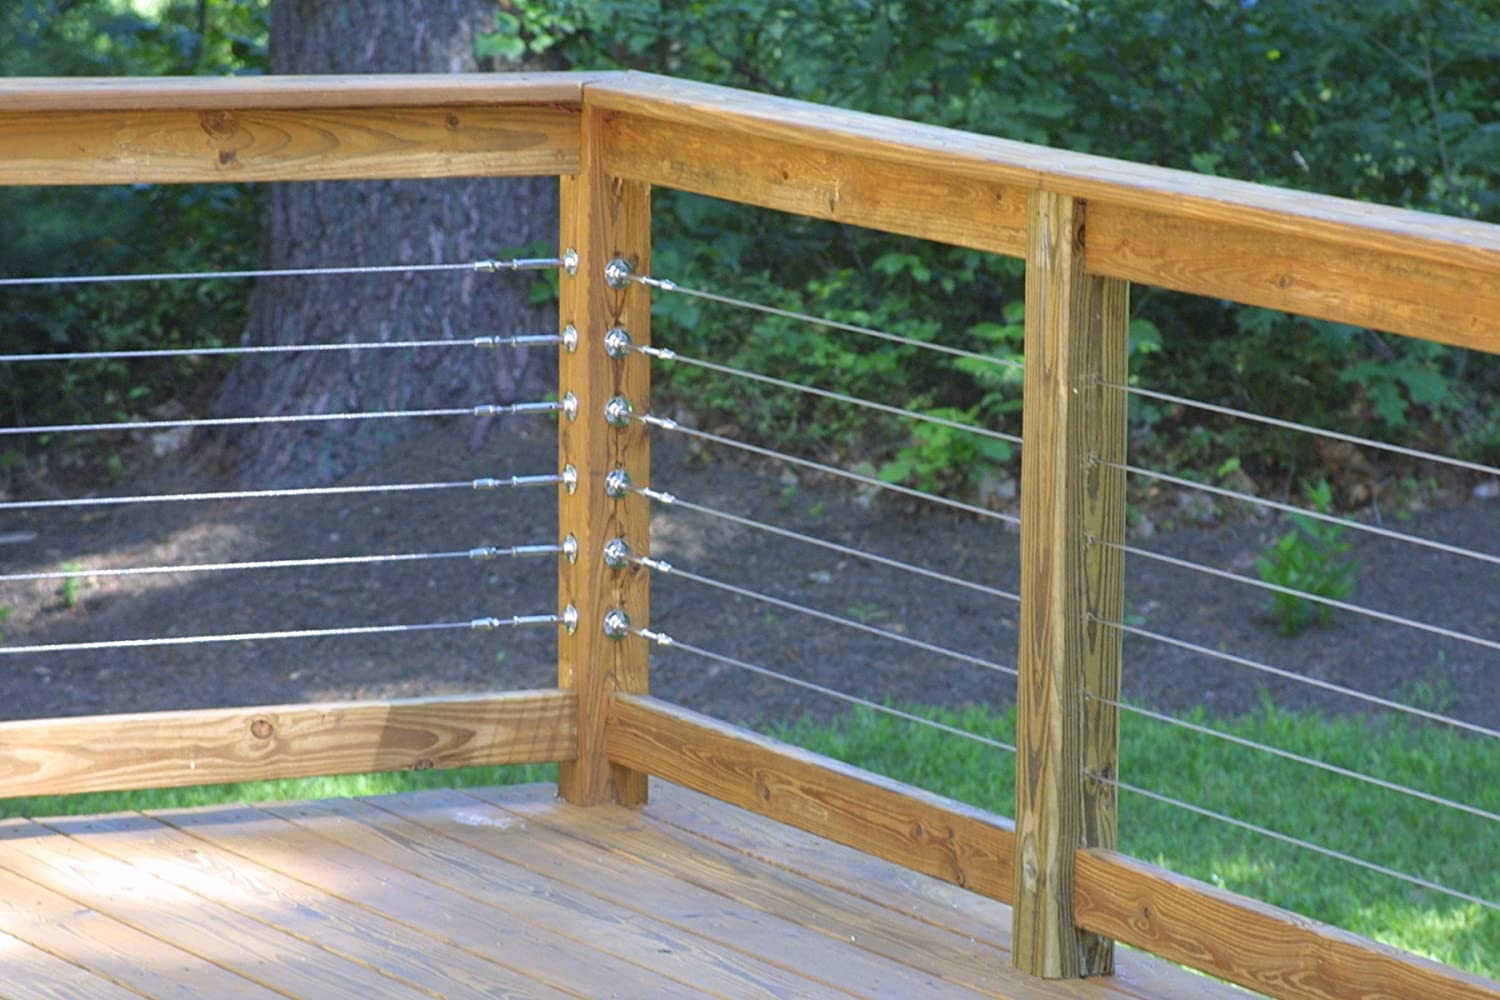 Raileasy Turnbuckle For Cable Railing S0981 0004 Decking | Wood And Wire Stair Railing | Before And After | Coastal | Natural Wood | Residential | Utility Panel